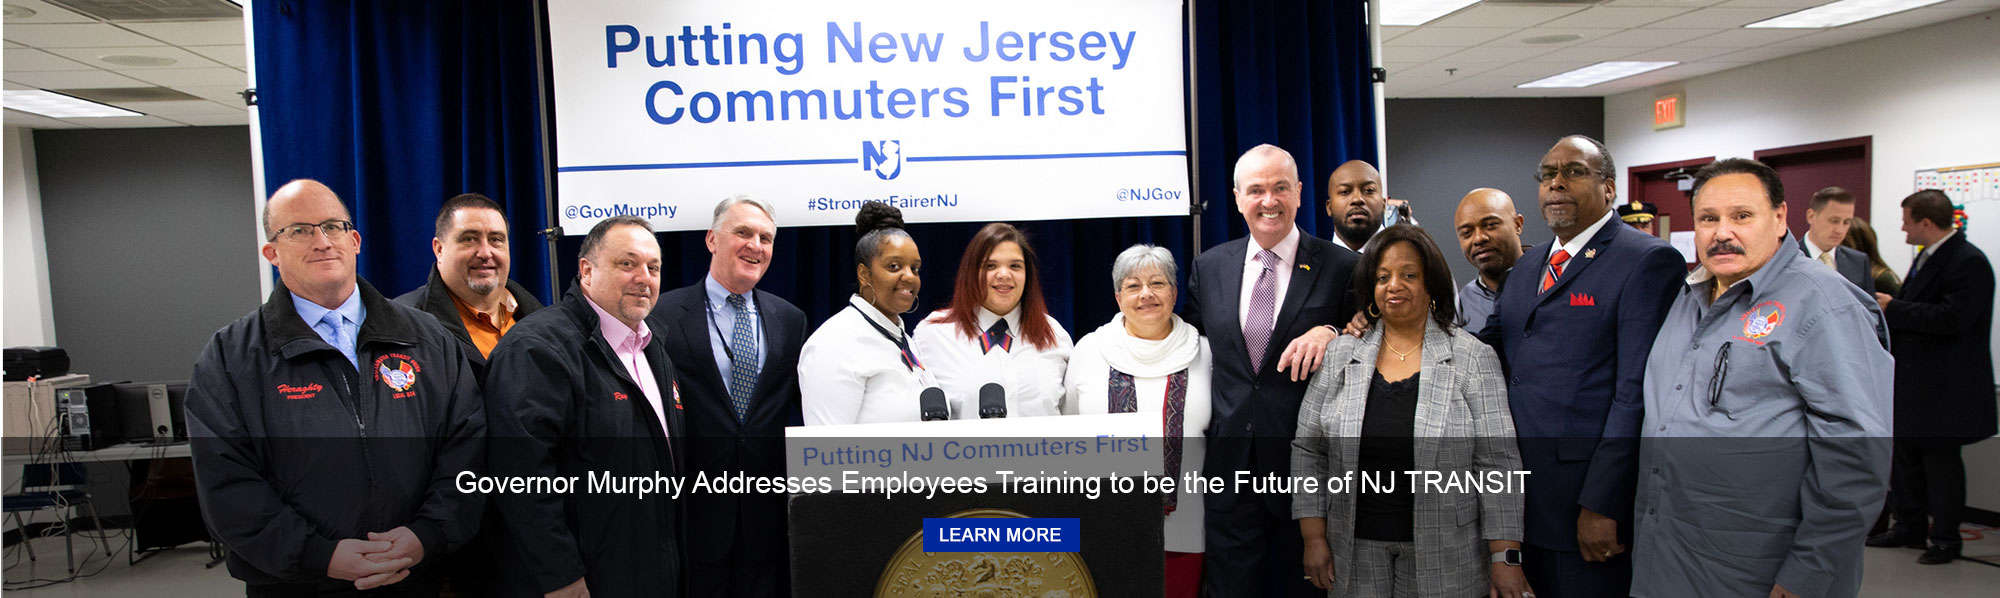 Governor Phil Murphy addresses NJ TRANSIT employees training to become new locomotive engineers and bus operators at the NJ TRANSIT Ferry St. training facility in Newark on January 17, 2019.